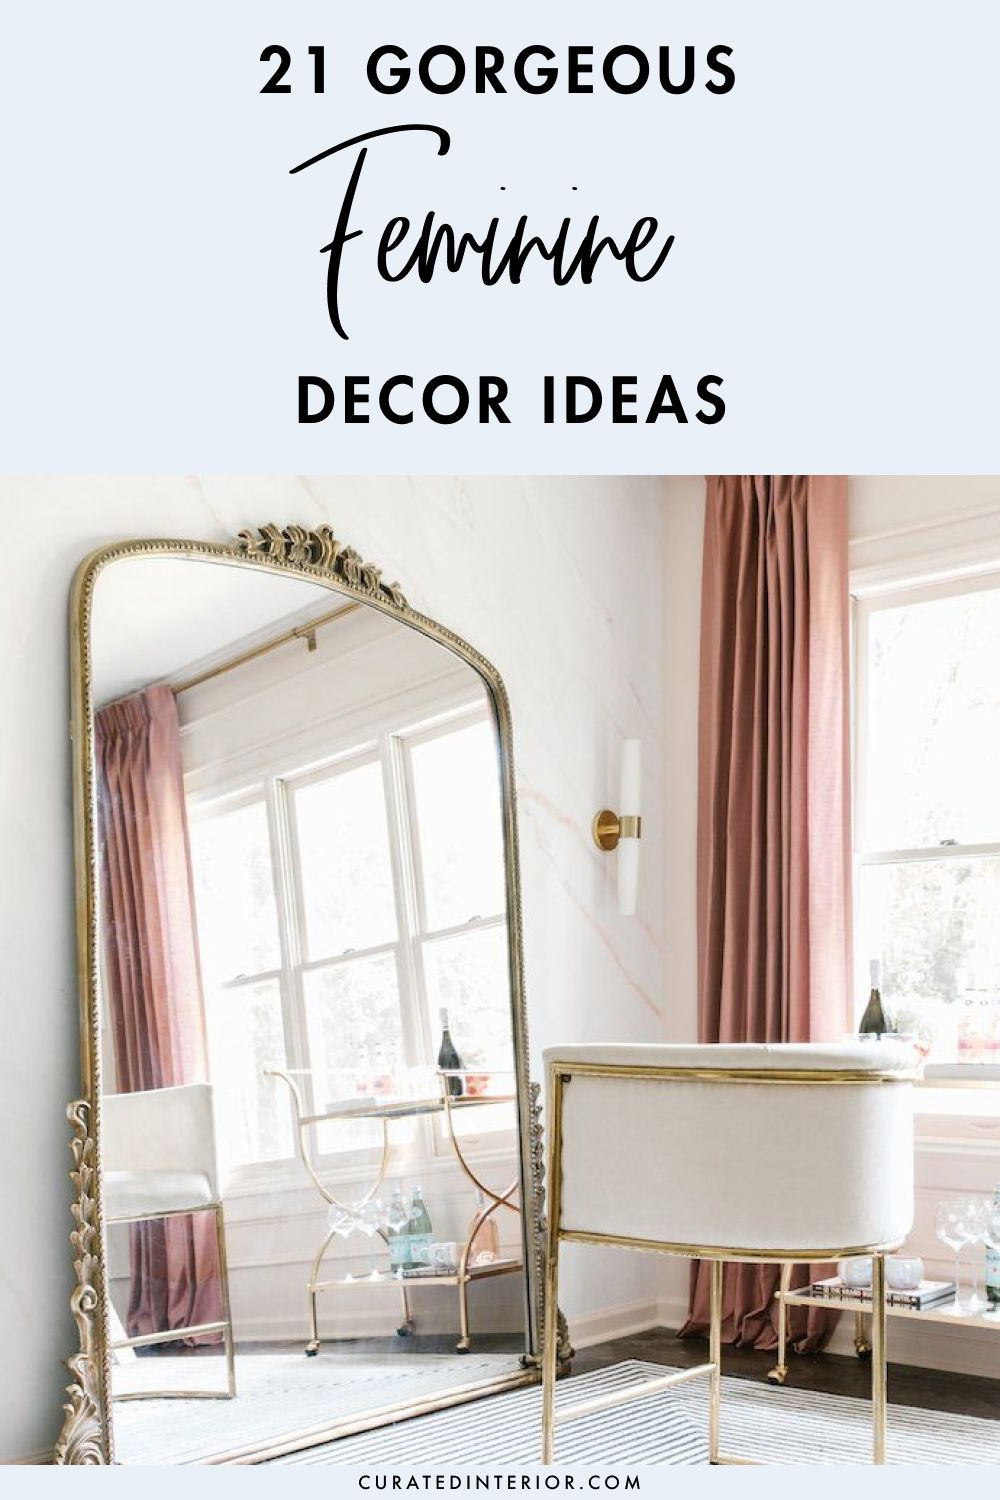 21 Gorgeous Feminine Decor Ideas